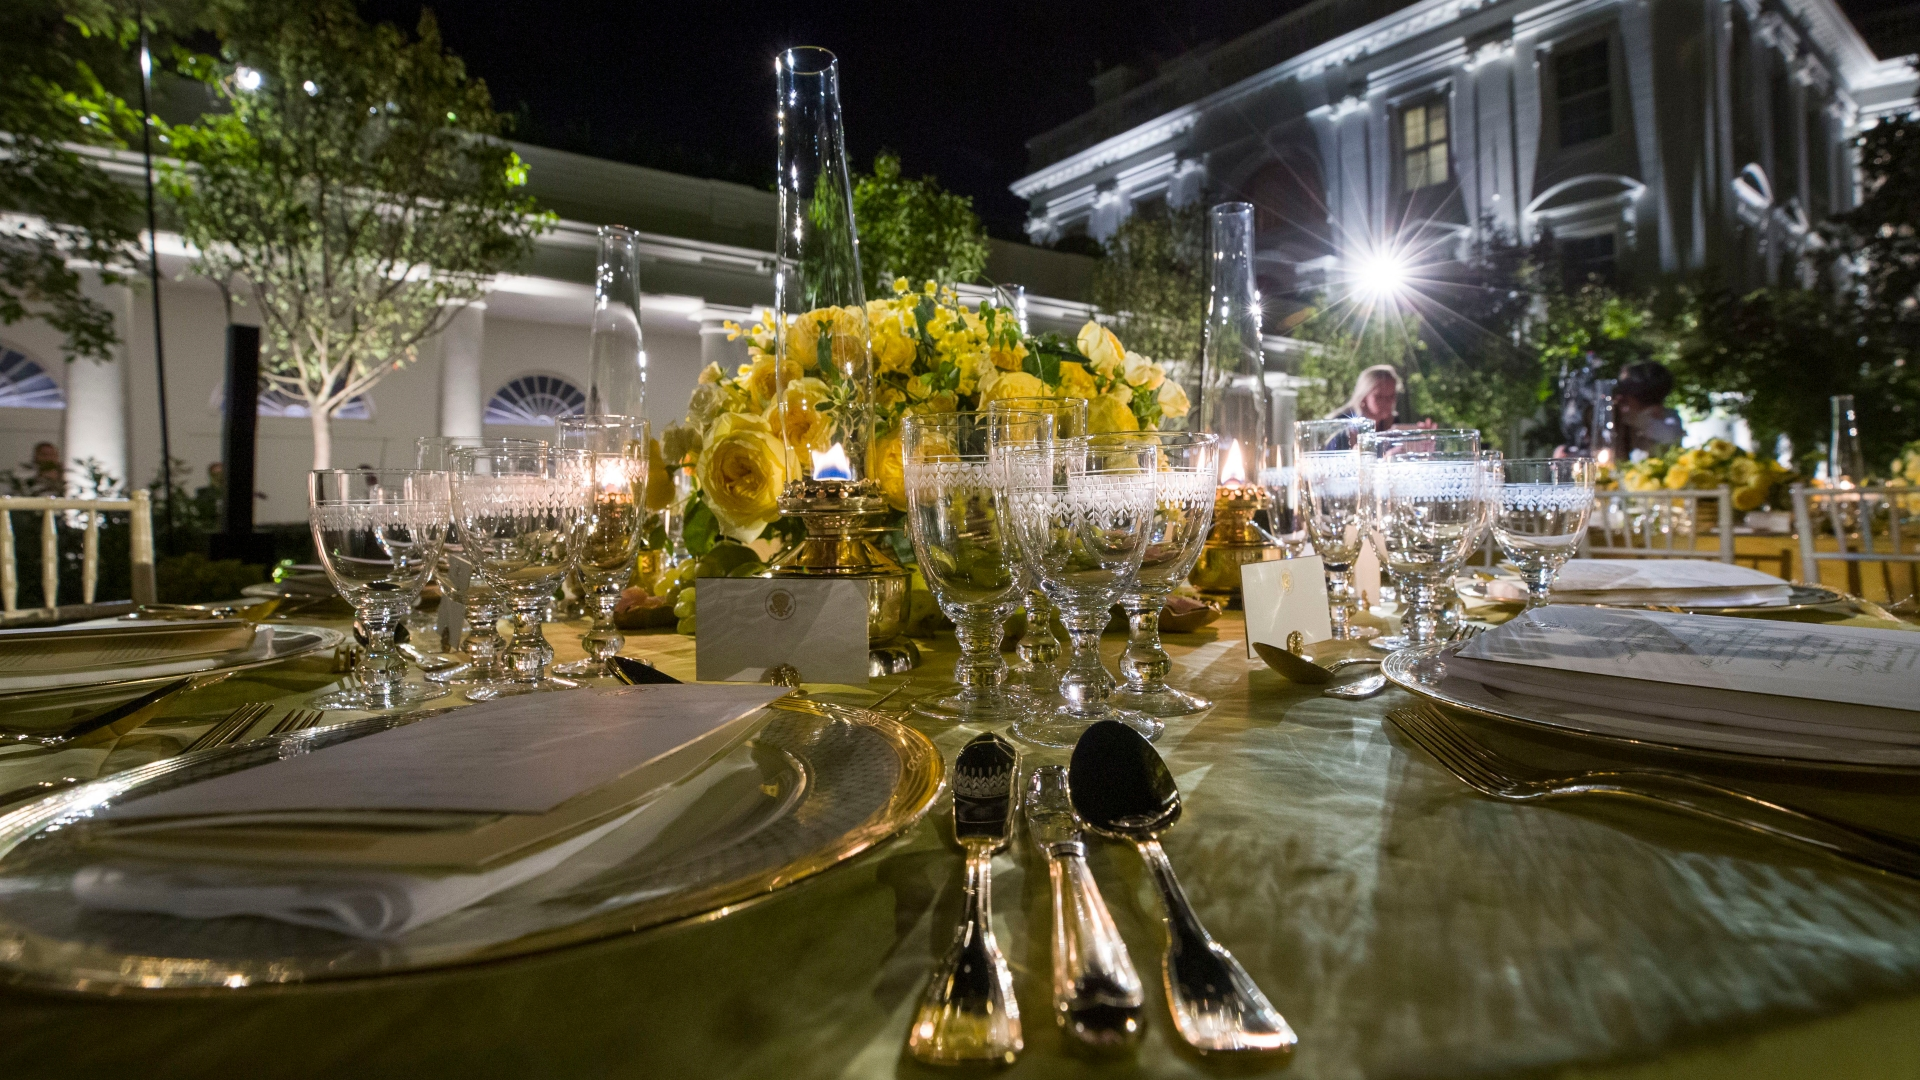 At the Trumps' second state dinner, a garden party under the stars